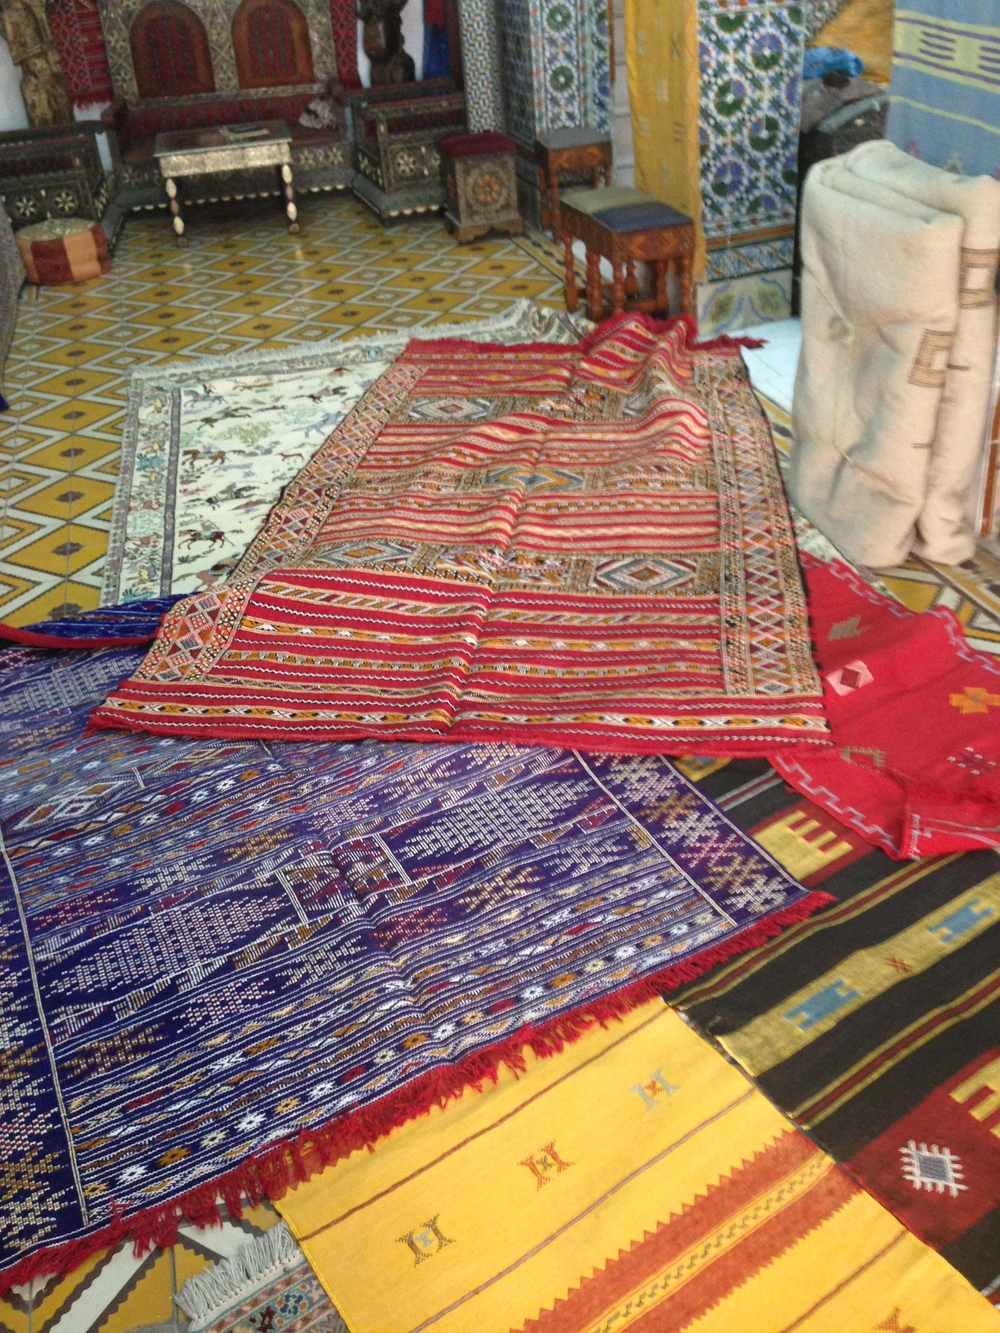 Rugs at Bazar Naciria